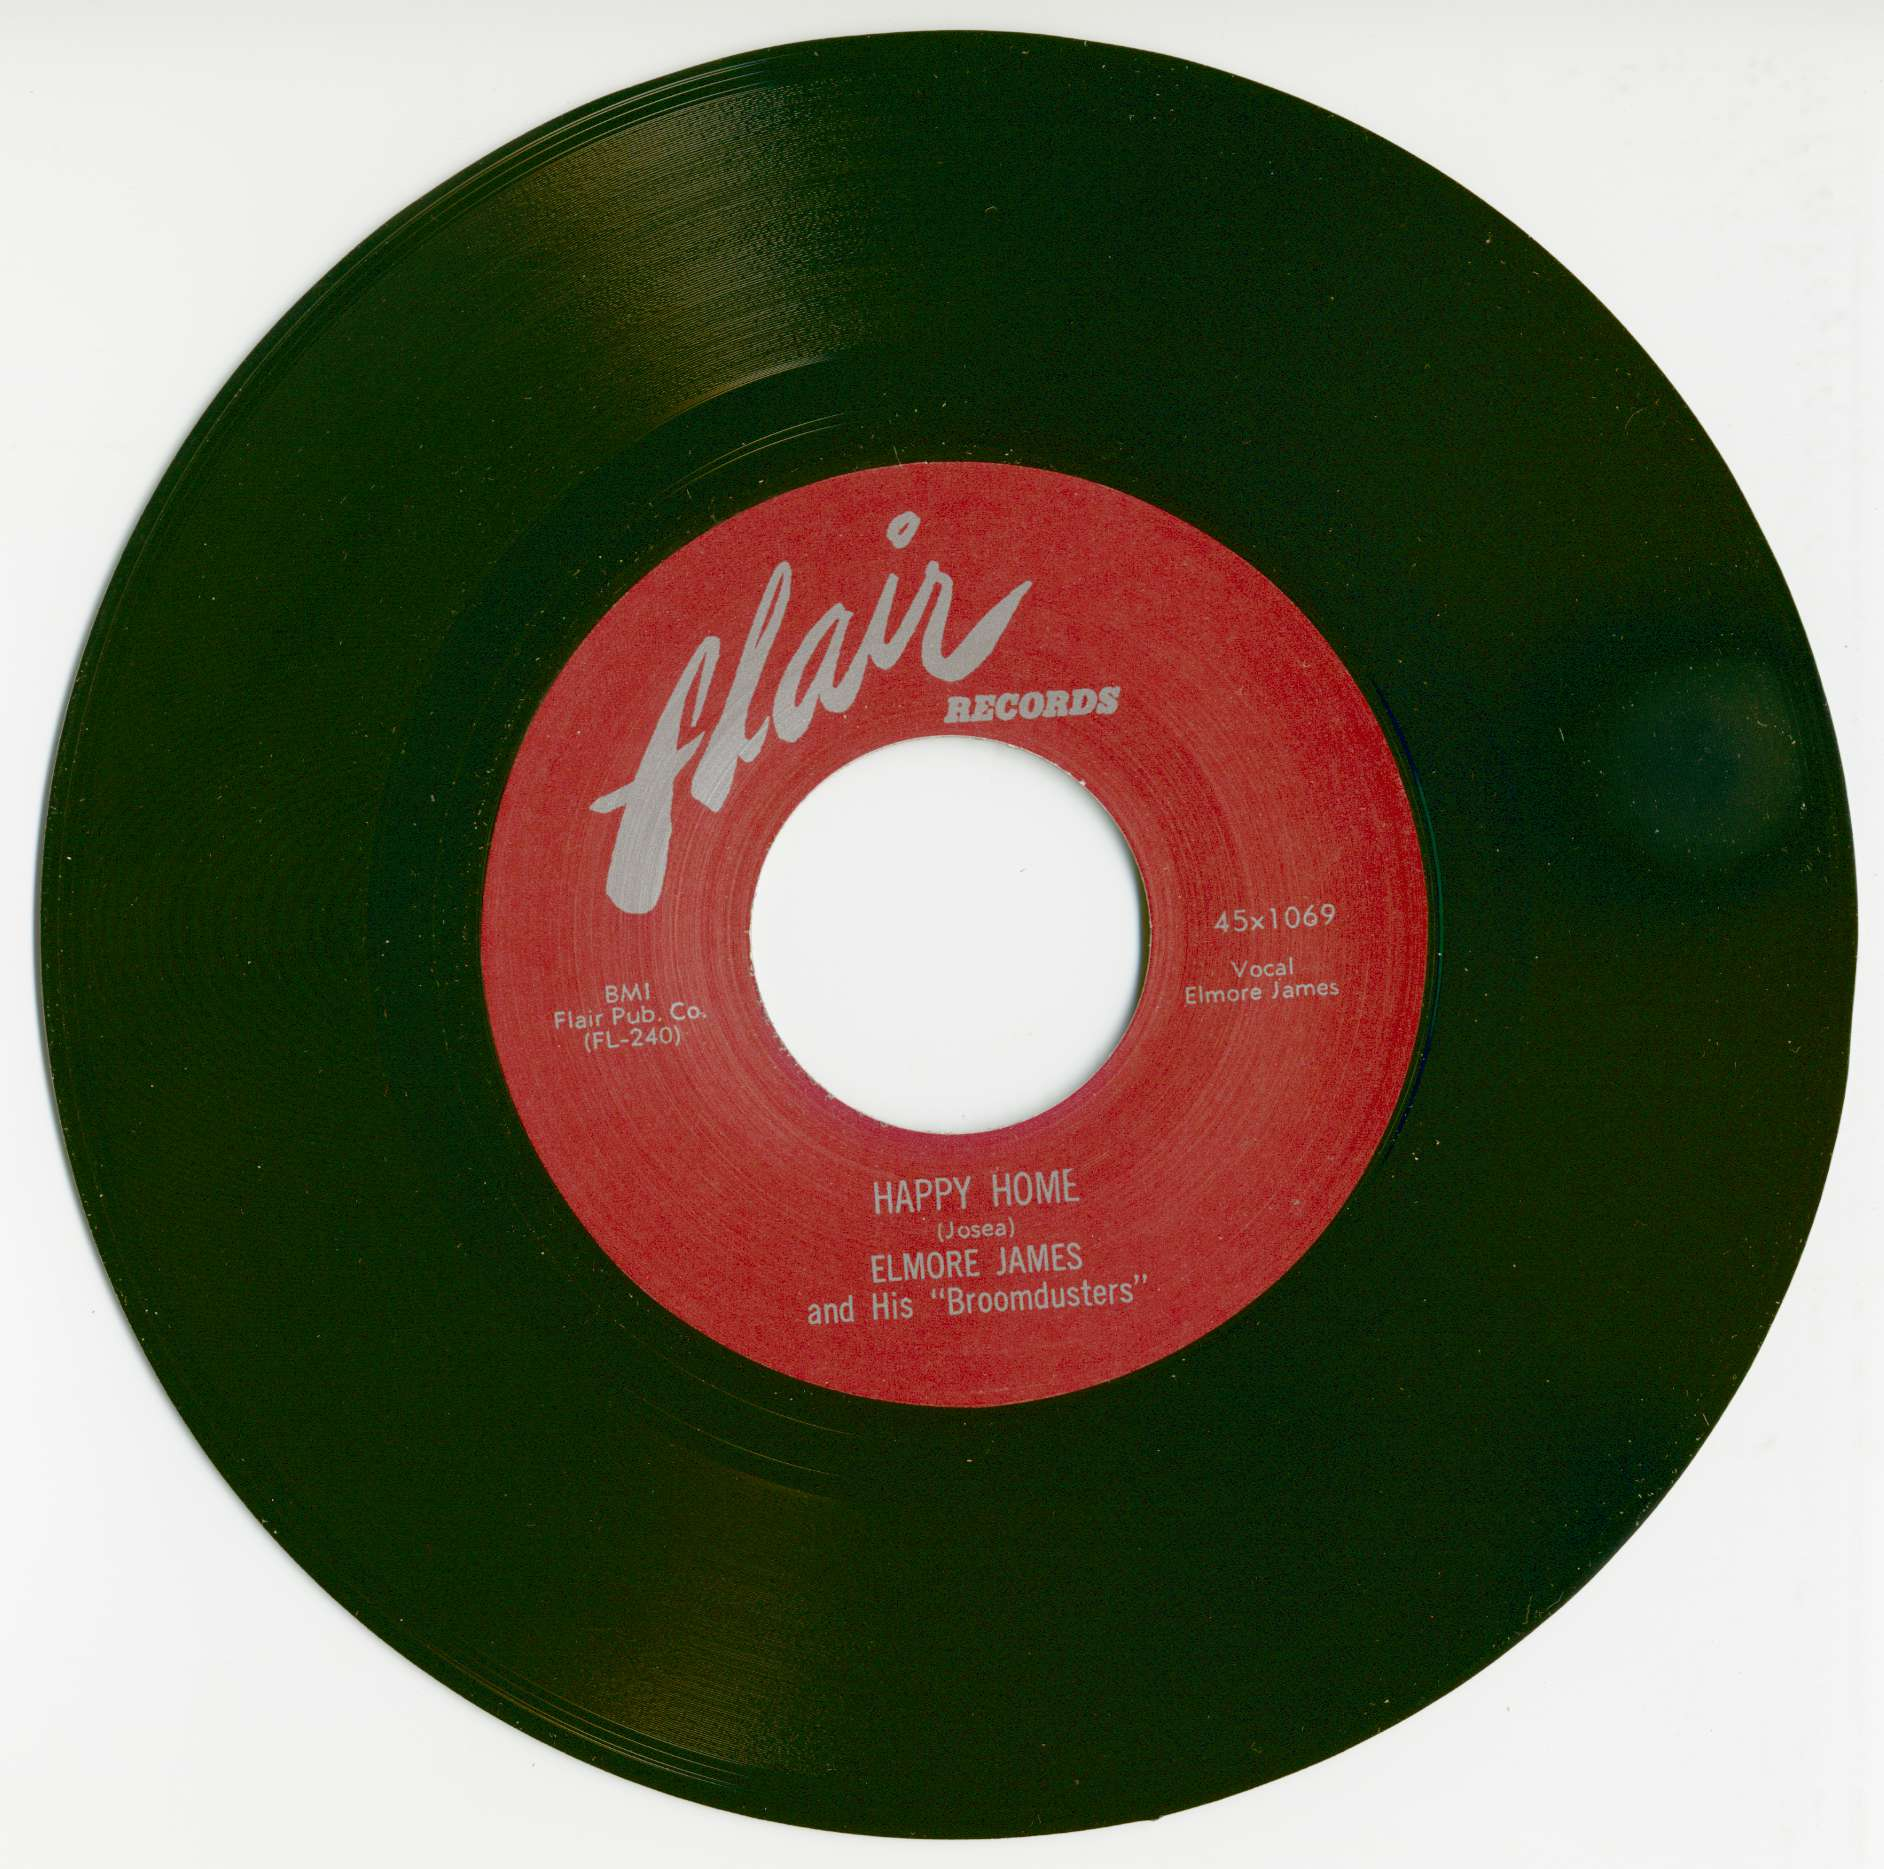 Elmore James 7inch: Happy Home b-w No Love In My Heart